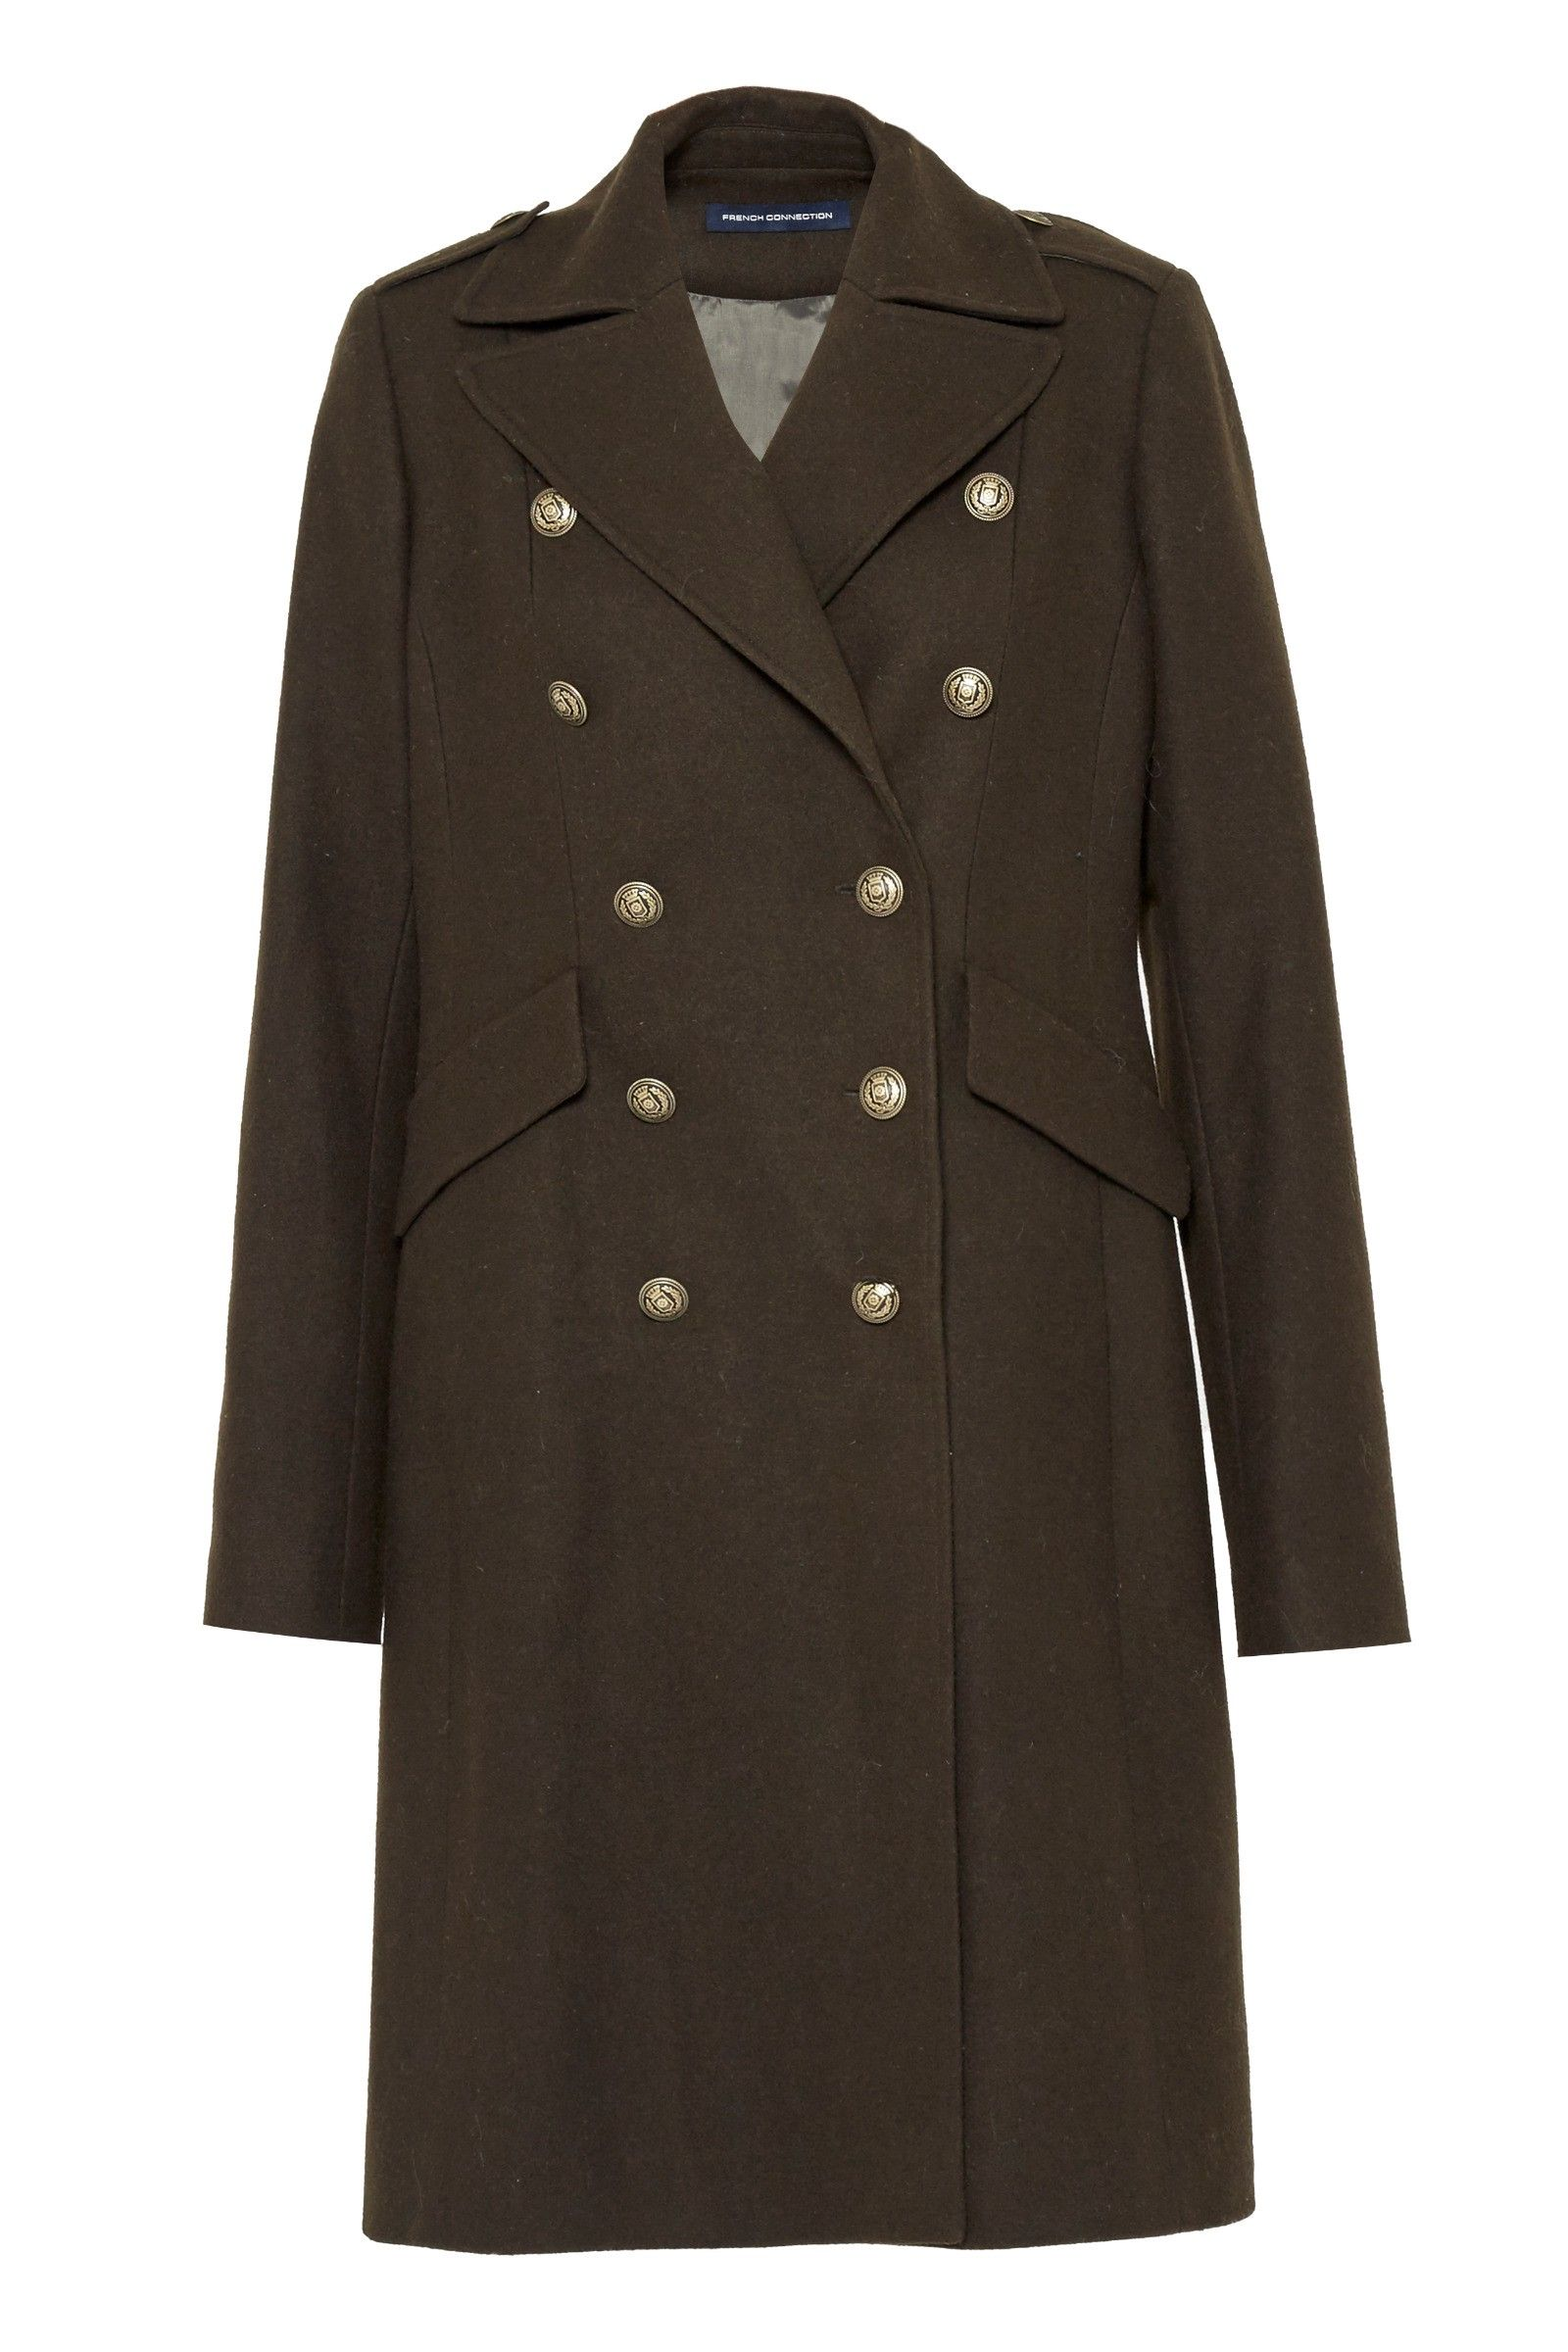 FRENCH CONNECTION BACK DETAIL MILITARY LONG COAT. #frenchconnection #cloth #